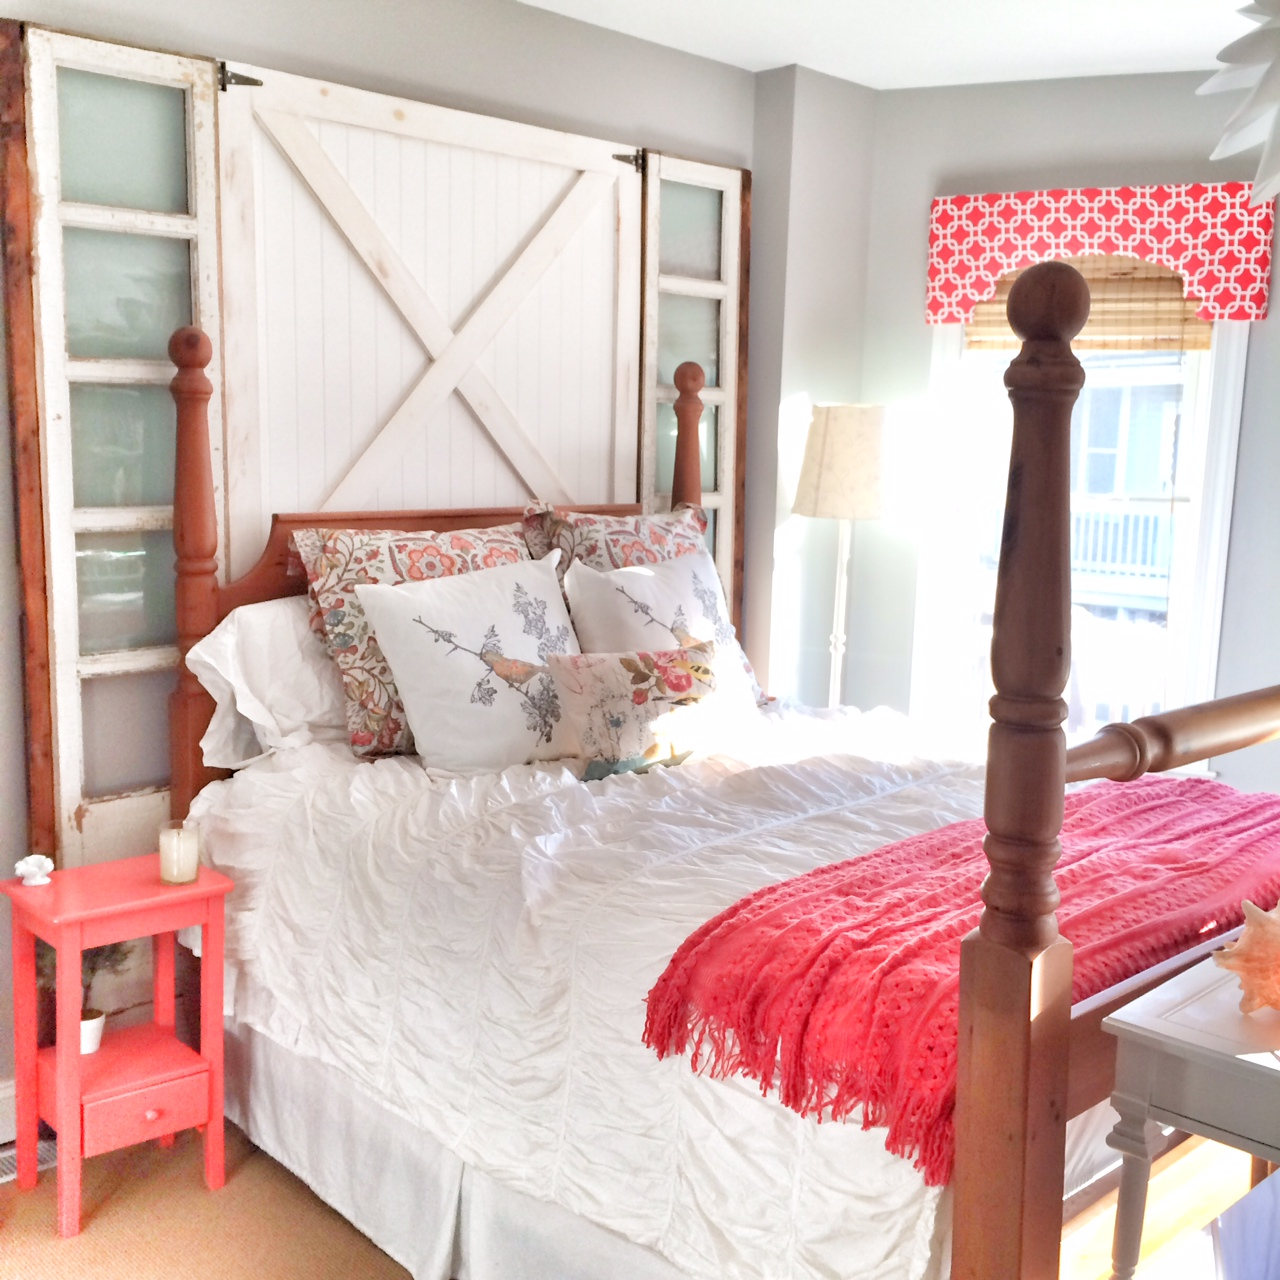 Do It Yourself Home Design: Do It Yourself Barn Door Headboard